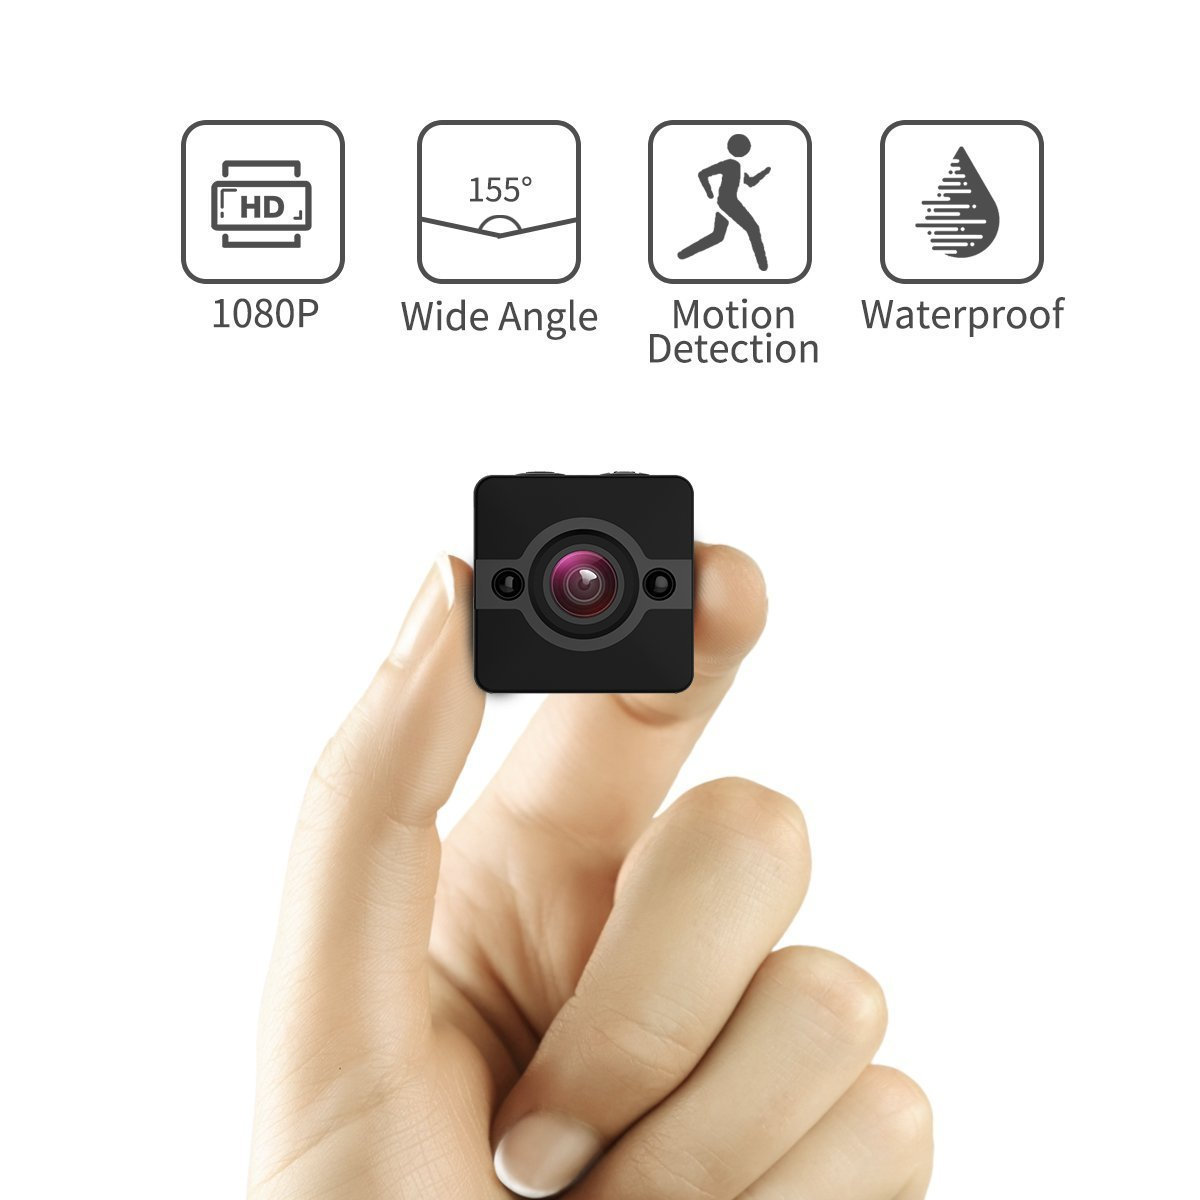 Mini Spy Hidden Camera, Waterproof Extreme Full HD Camera with 155° Wide-Angle Lens, Nanny/Housekeeper Cam with Night Vision & Motion Detection, Sports Action Cam with Mounting Accessories Kit